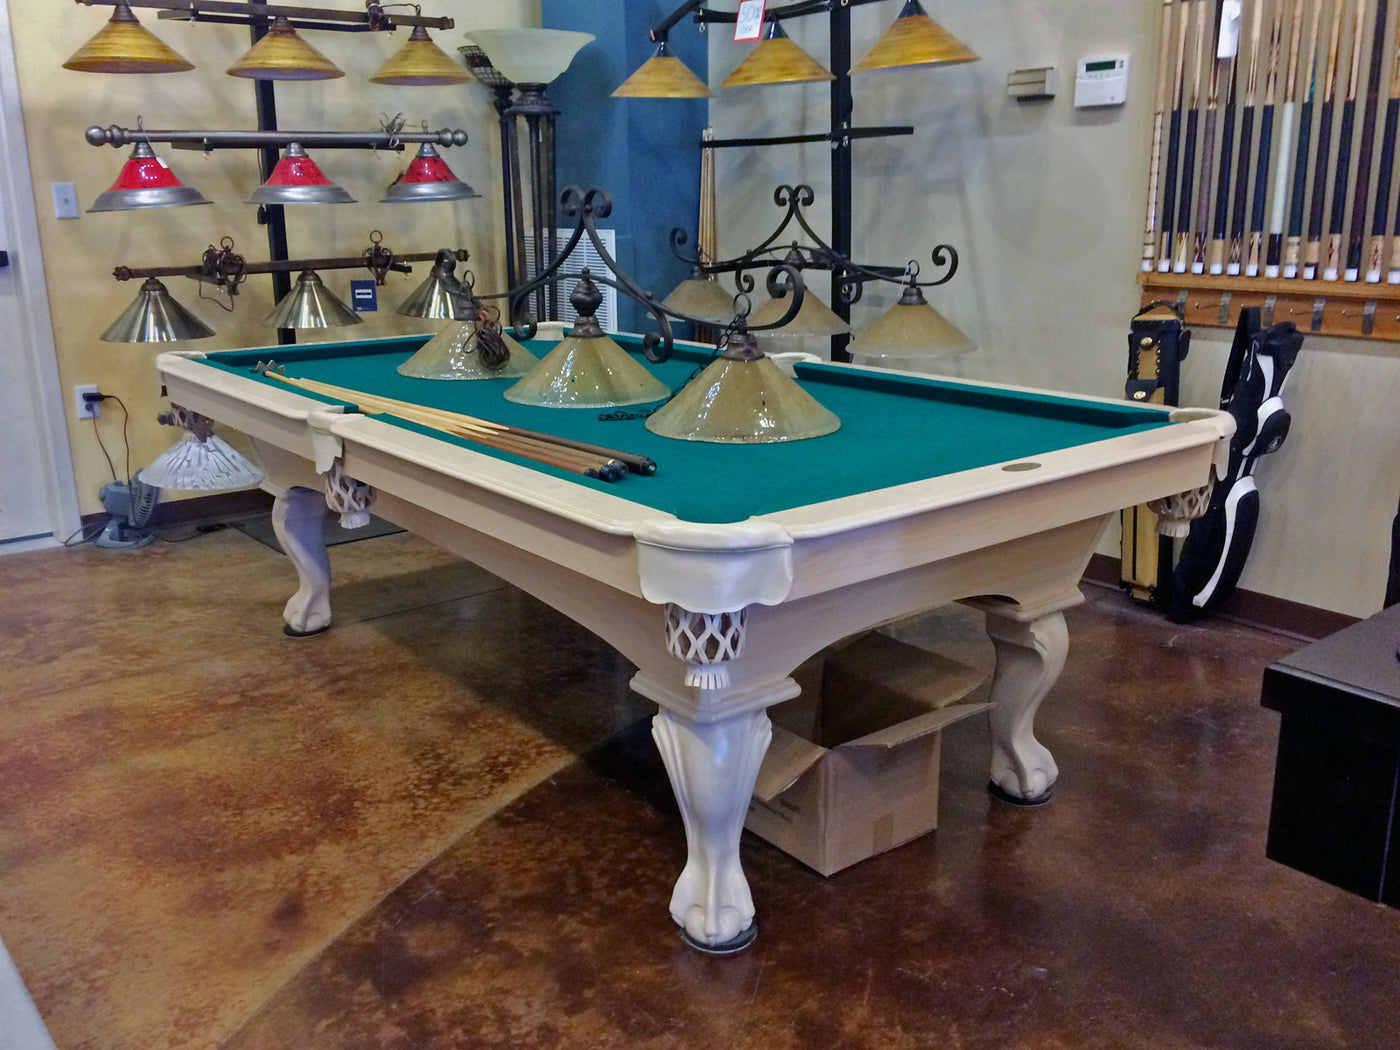 Olhausen Blackhawk Pool Table · Olhausen Blackhawk Pool Table White Wash  Finish ...